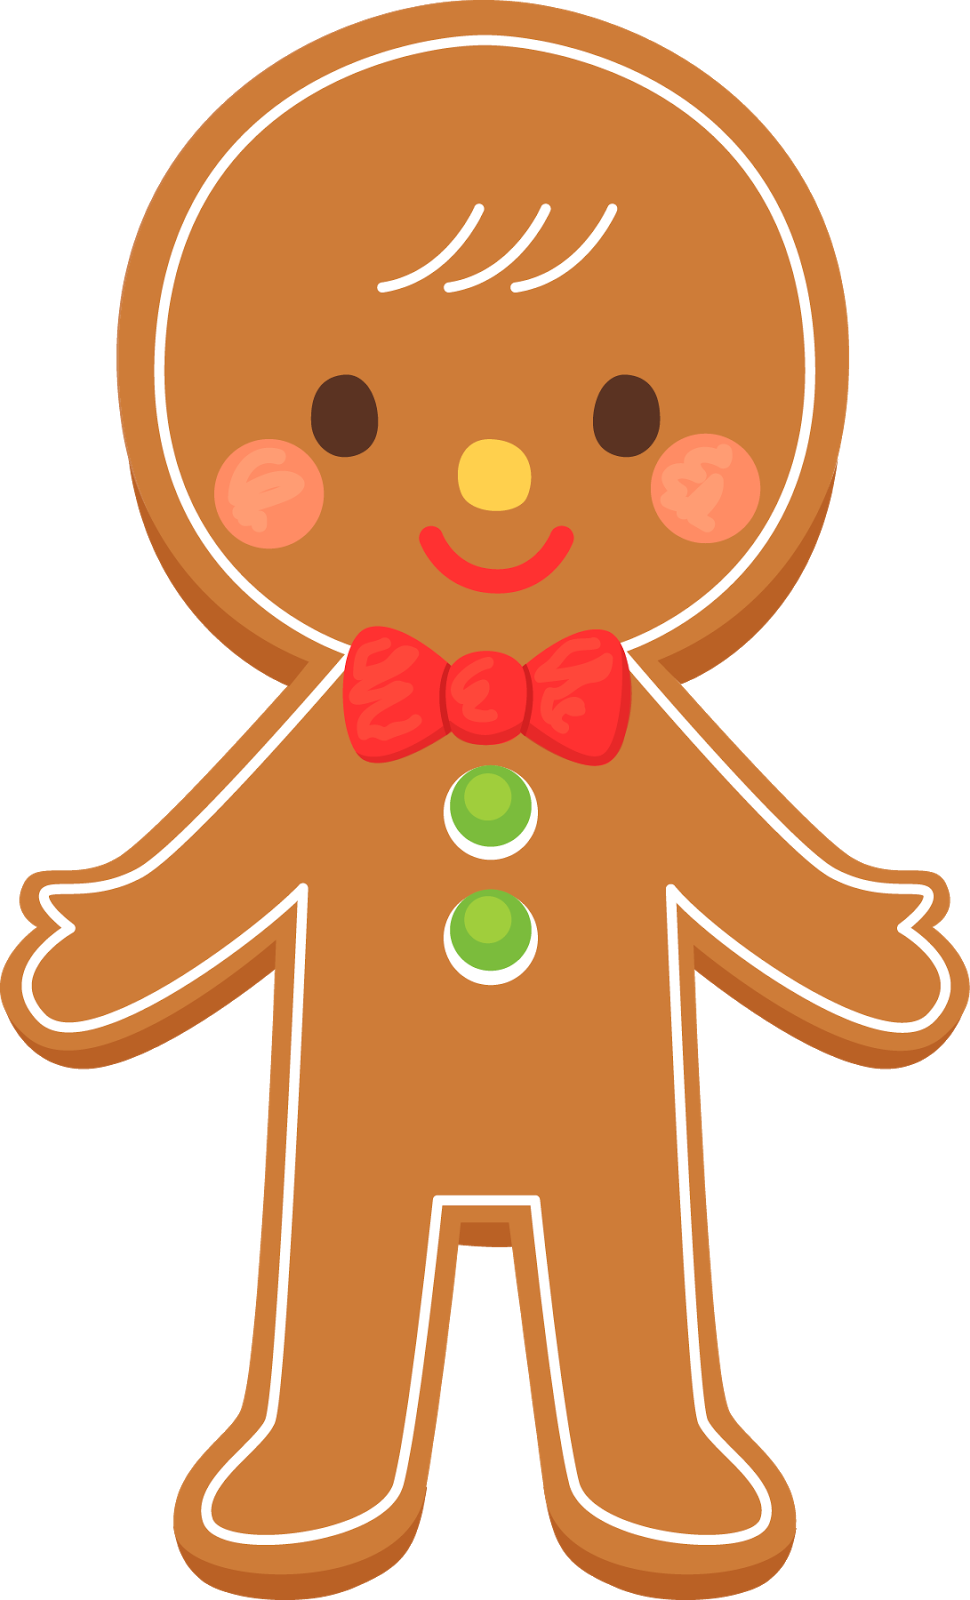 Christmas gingerbread man clip art clip art gingerbread image 4.